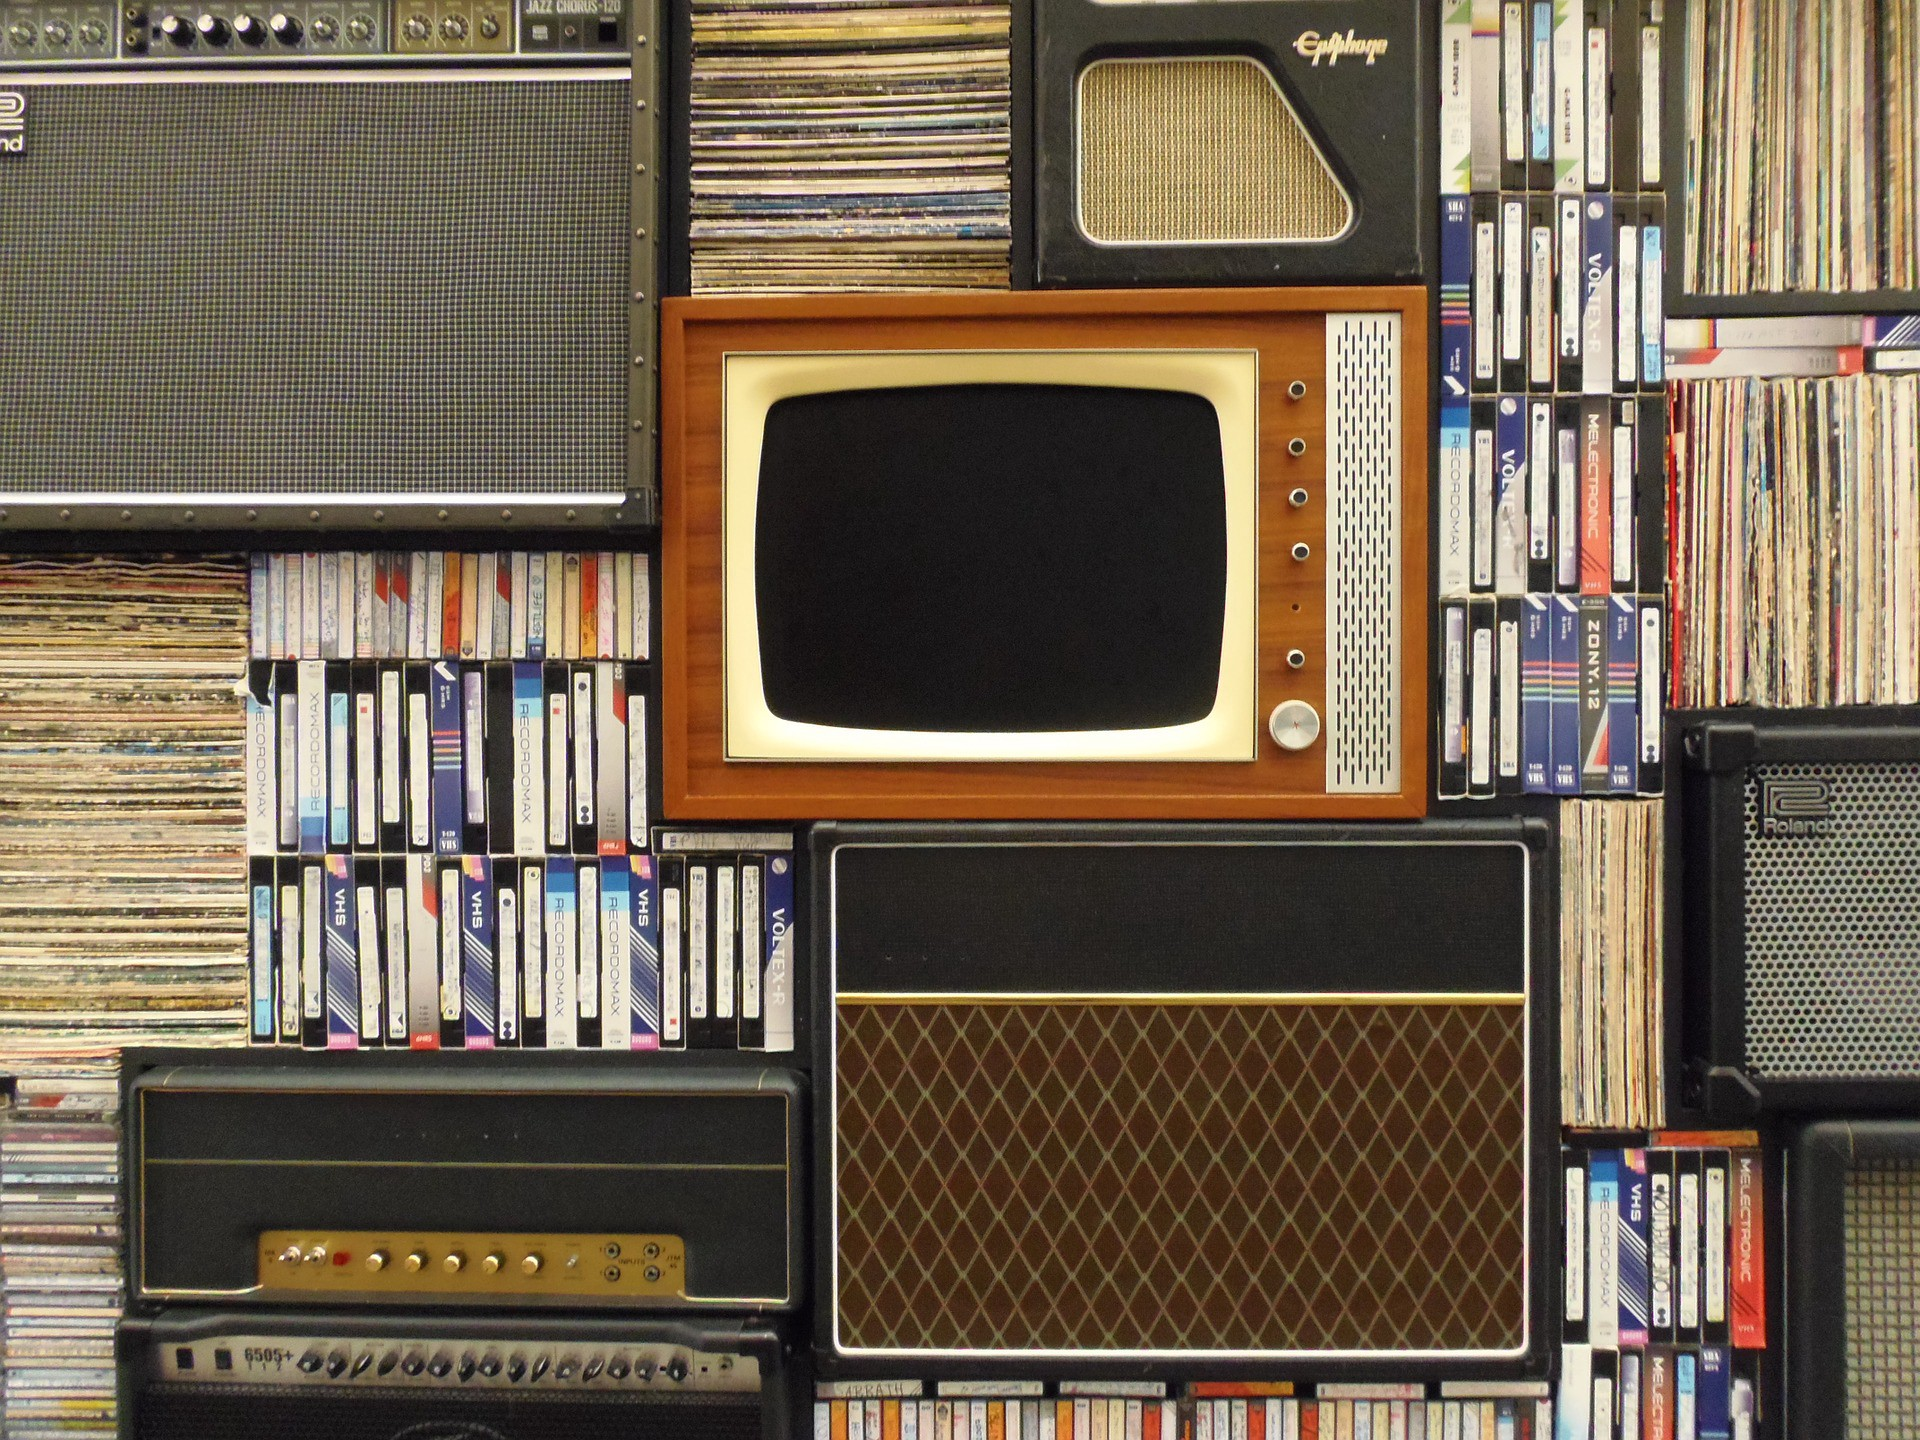 The image shows an old tv, music records, and vhs tapes.